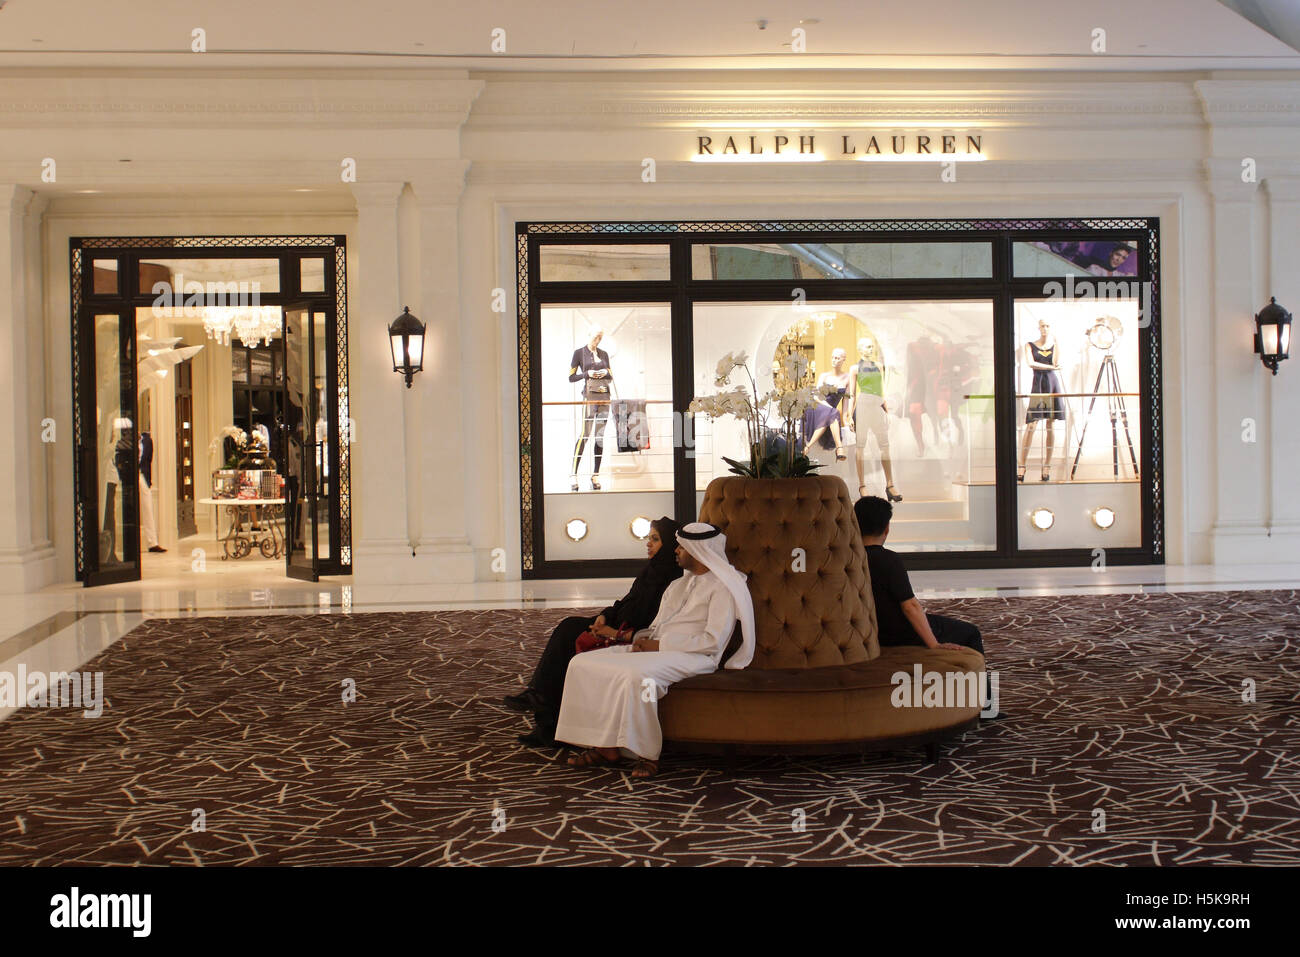 Ralph Lauren Store In The Fashion Avenue With 70 International Stock Photo Royalty Free Image